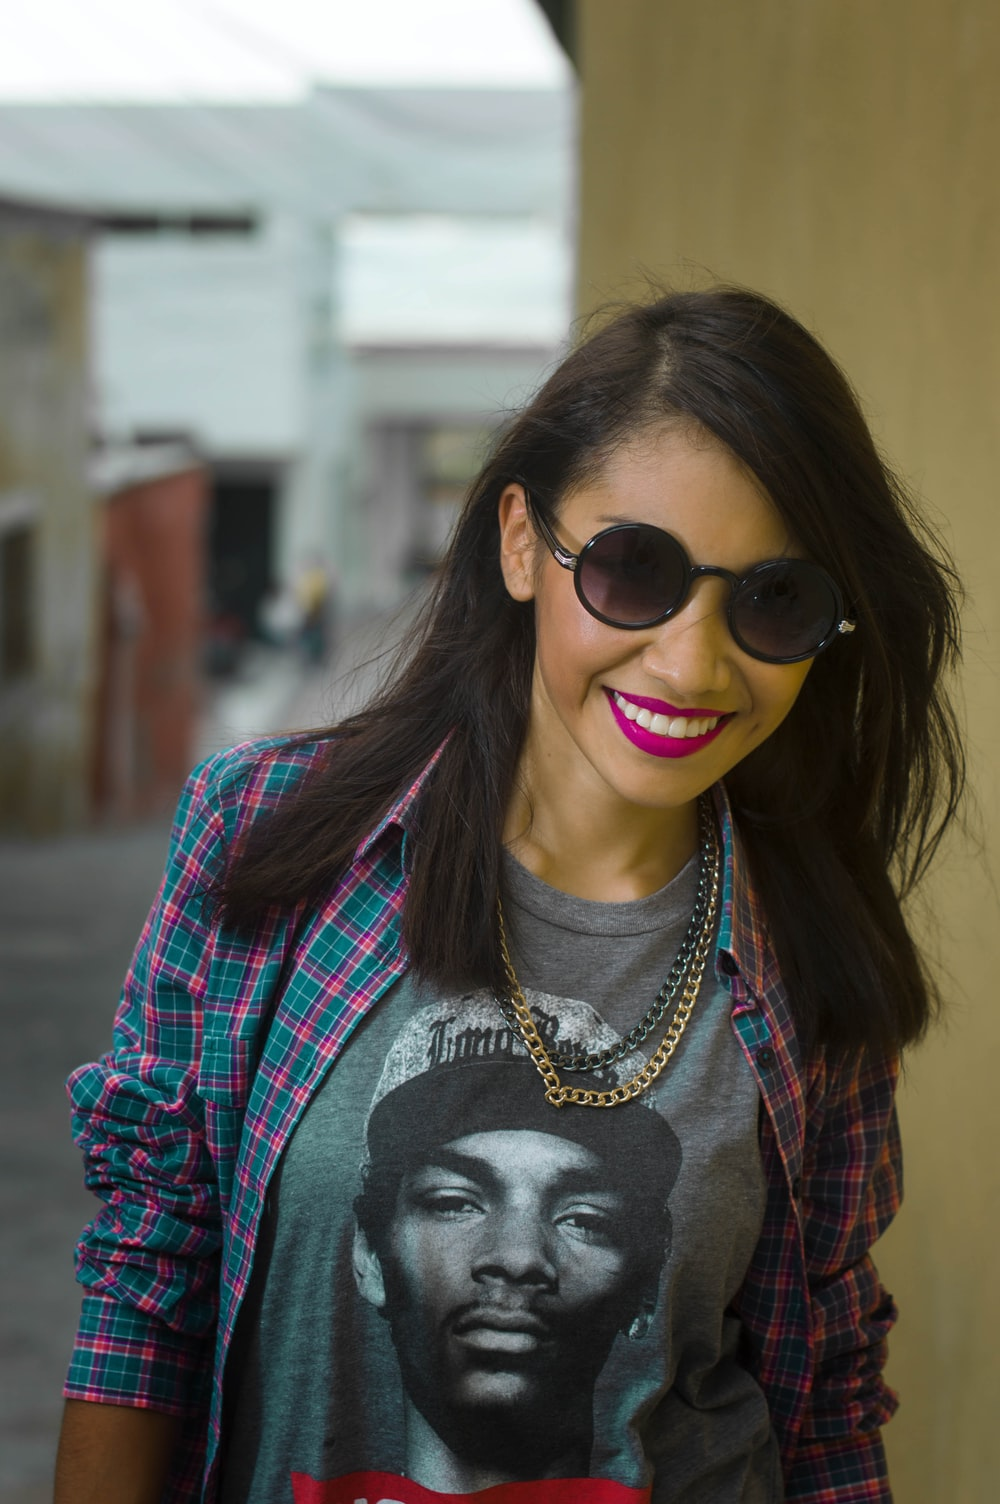 selective focus photo of woman wearing sunglasses